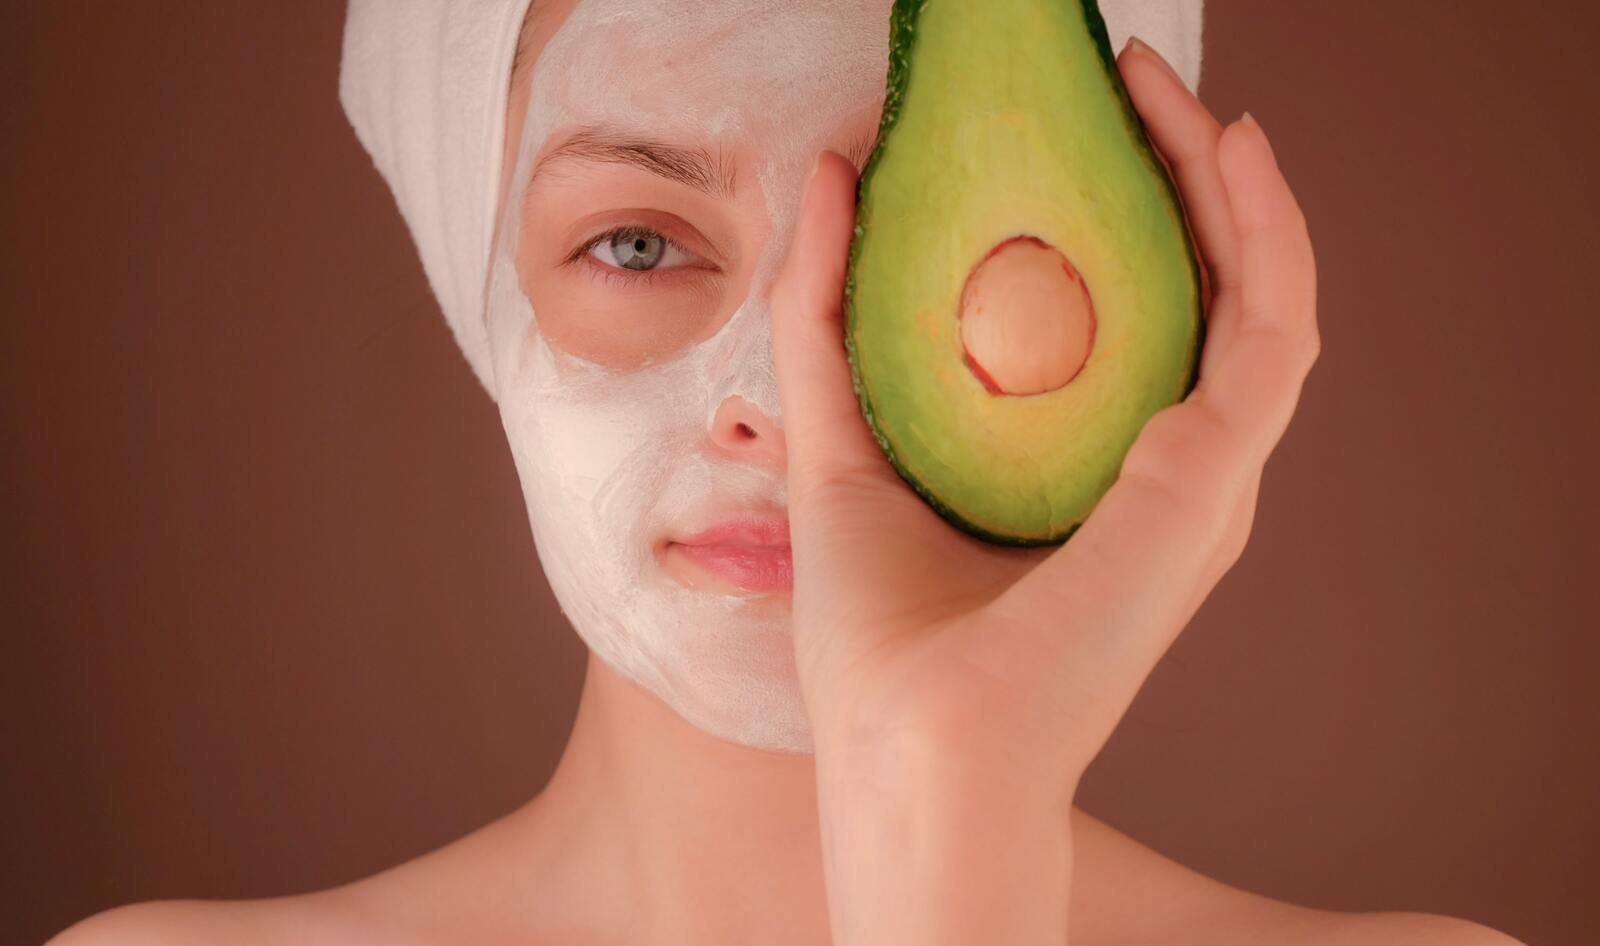 My Favorite 3-Ingredient Avocado Face Mask for an Instant Pick-Me-Up